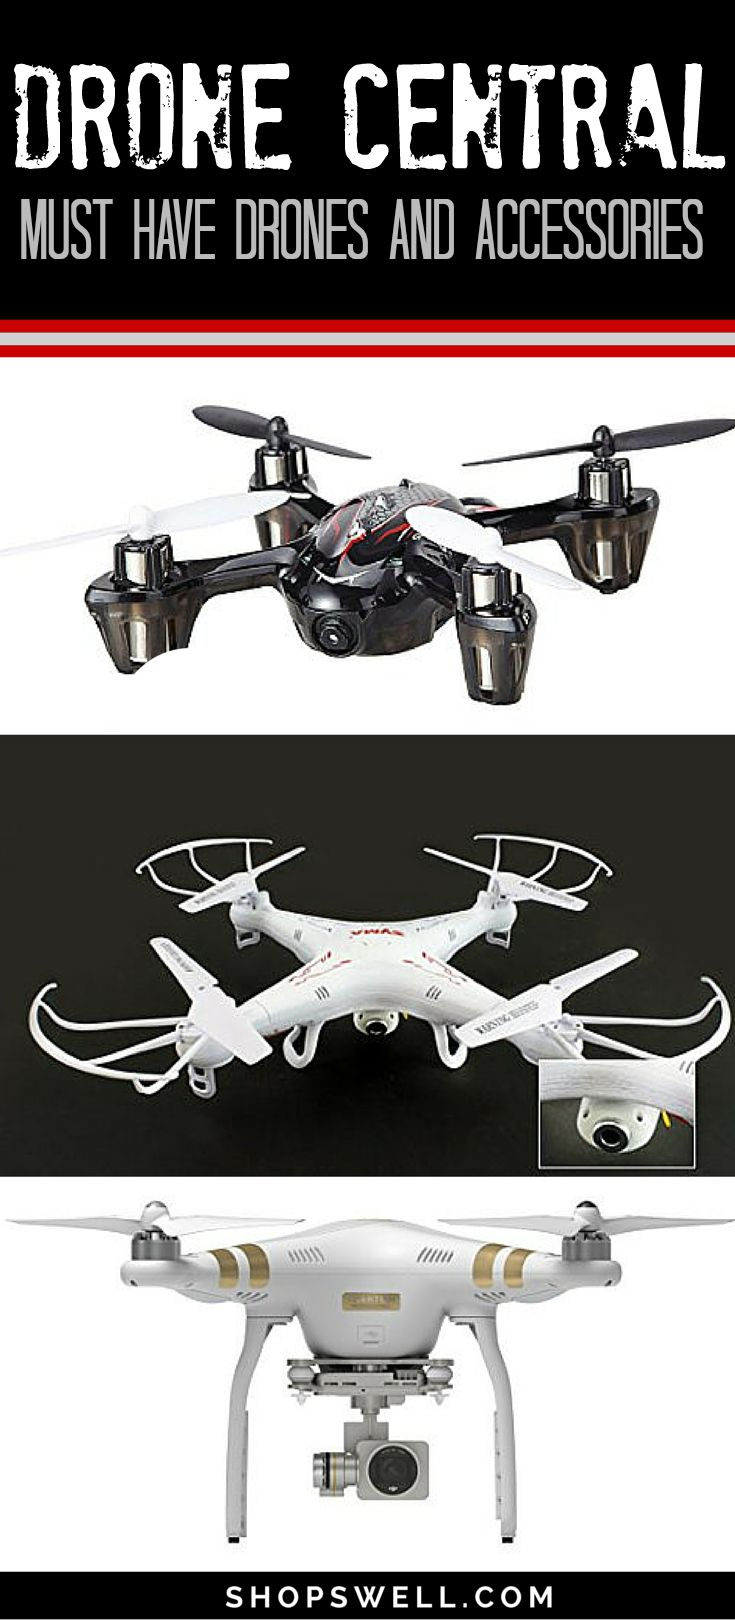 Drones are the most approachable facet of the massive technological advancement occurring in the 21st century. This  list shows you what you need to immerse yourself in this marvelous world of drones